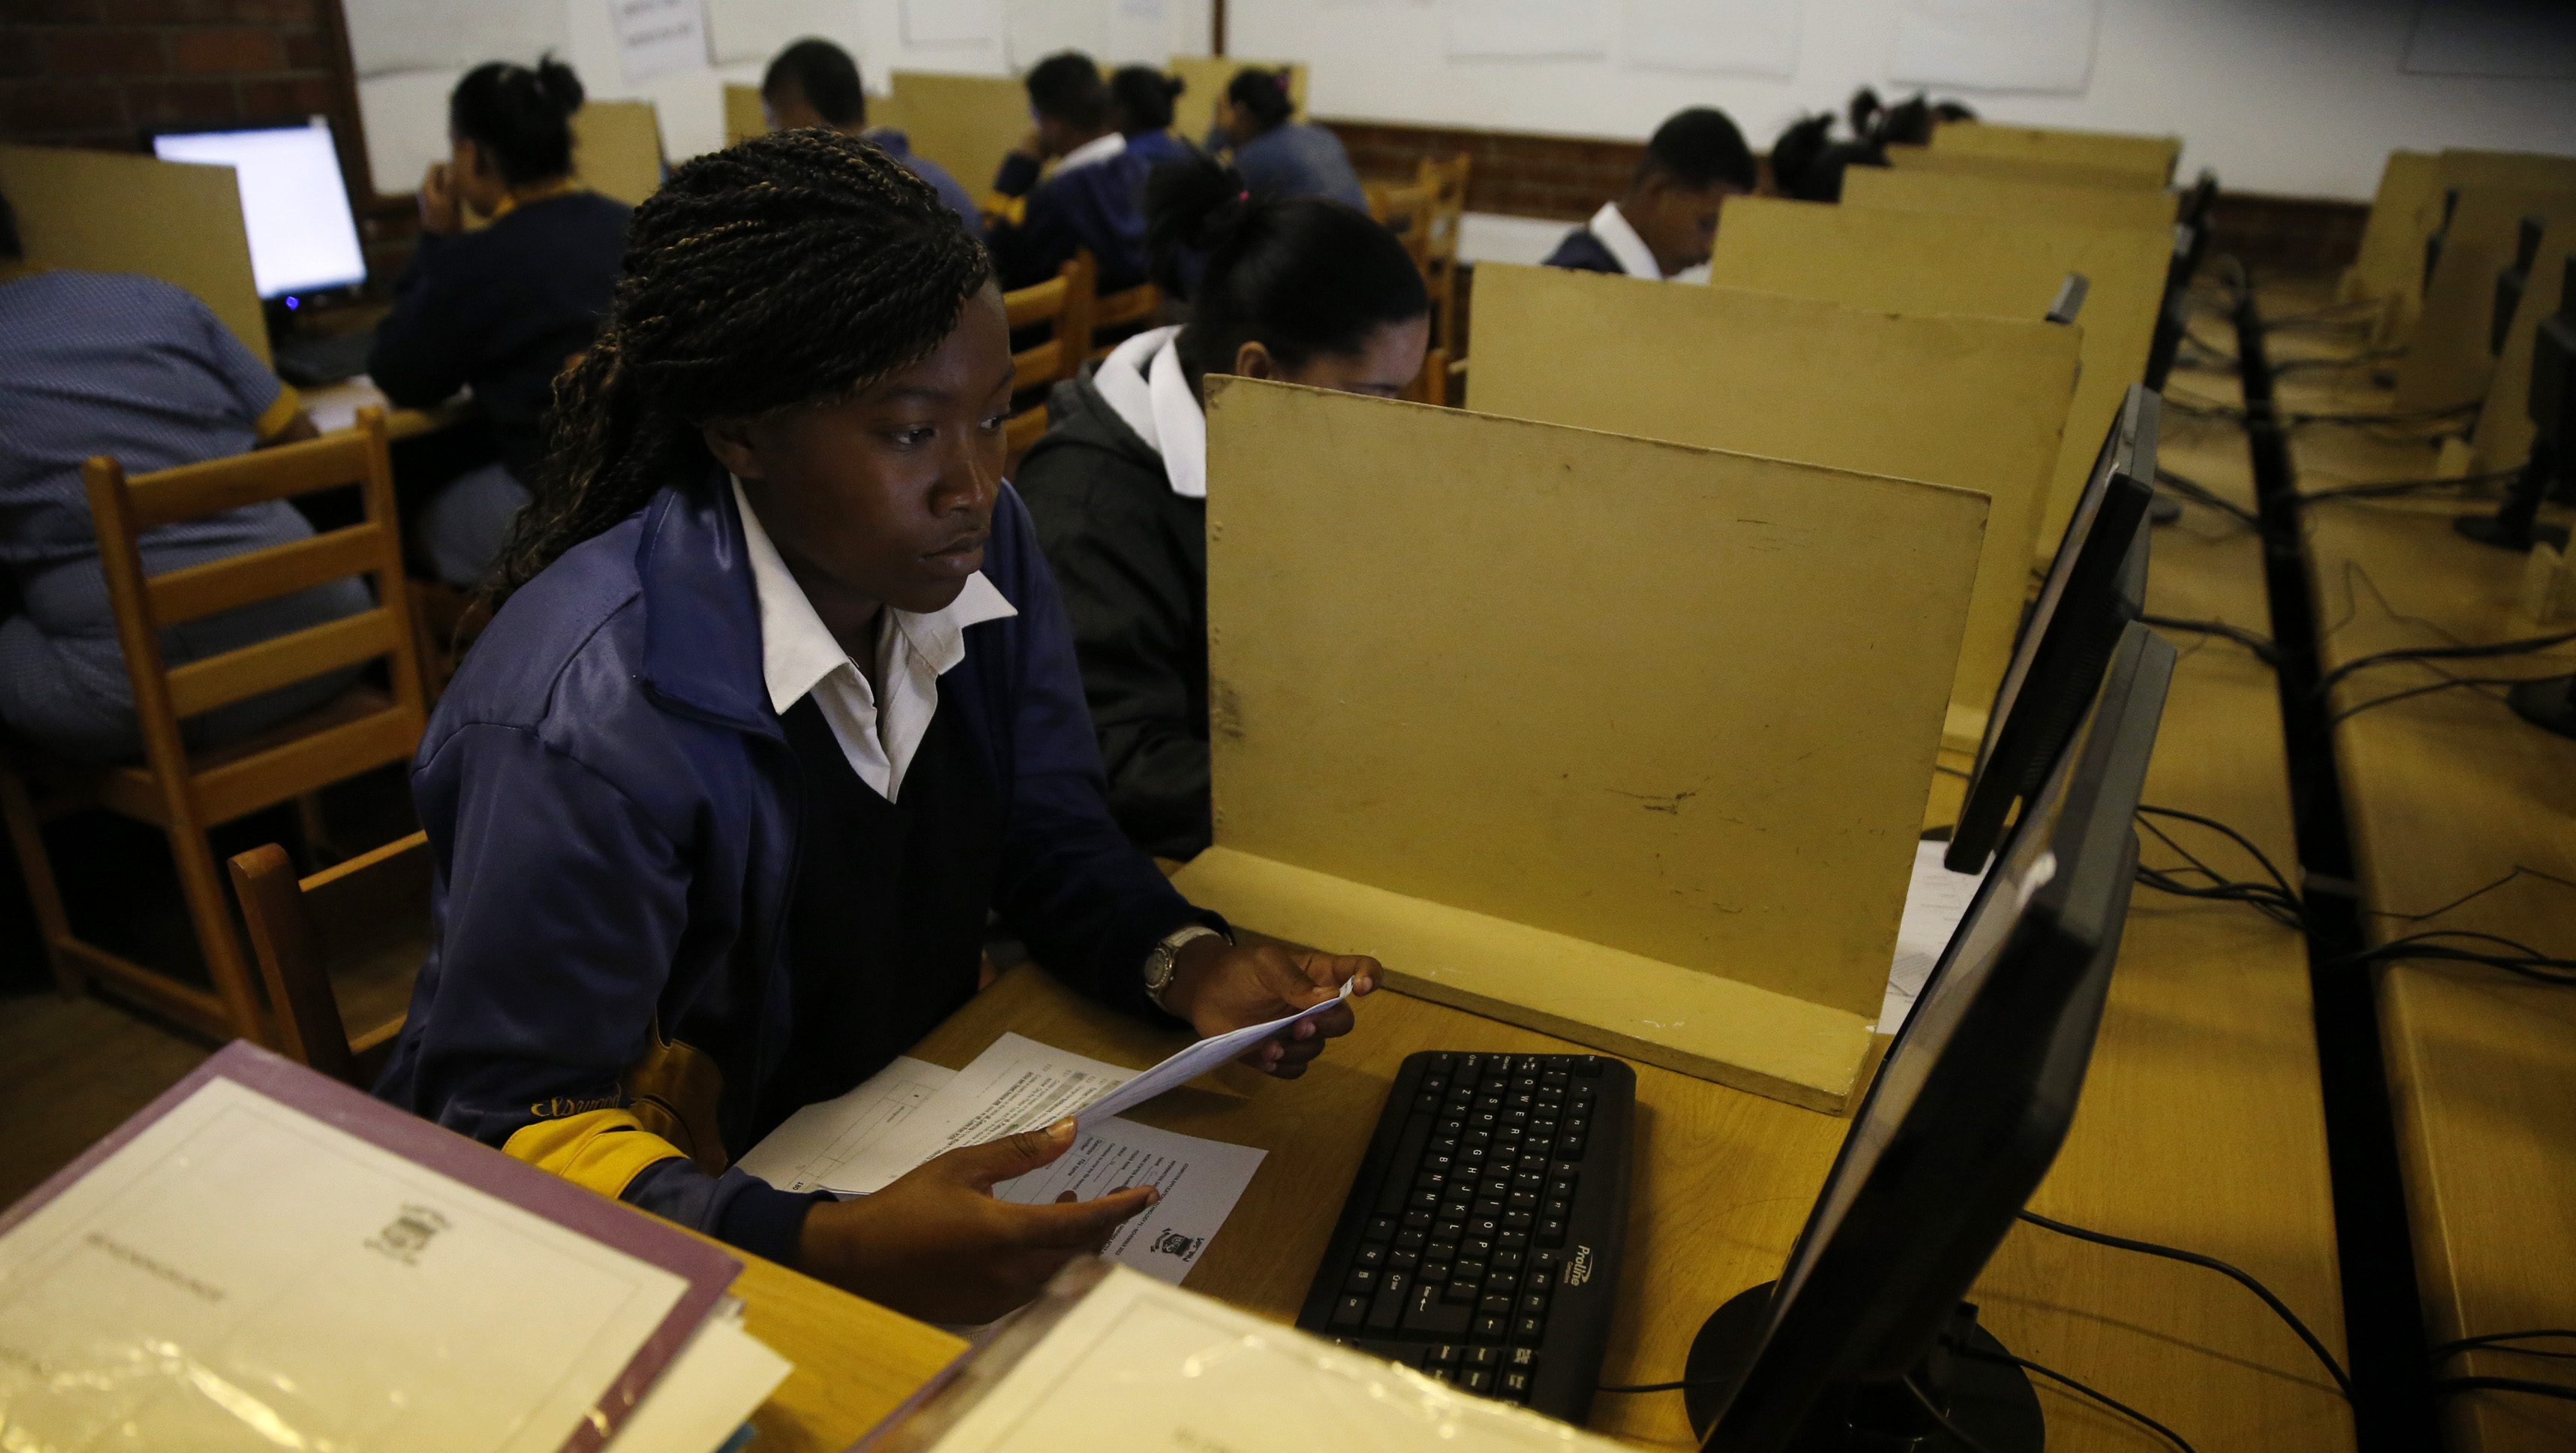 Students use computers to study at Elswood Secondary School in Cape Town